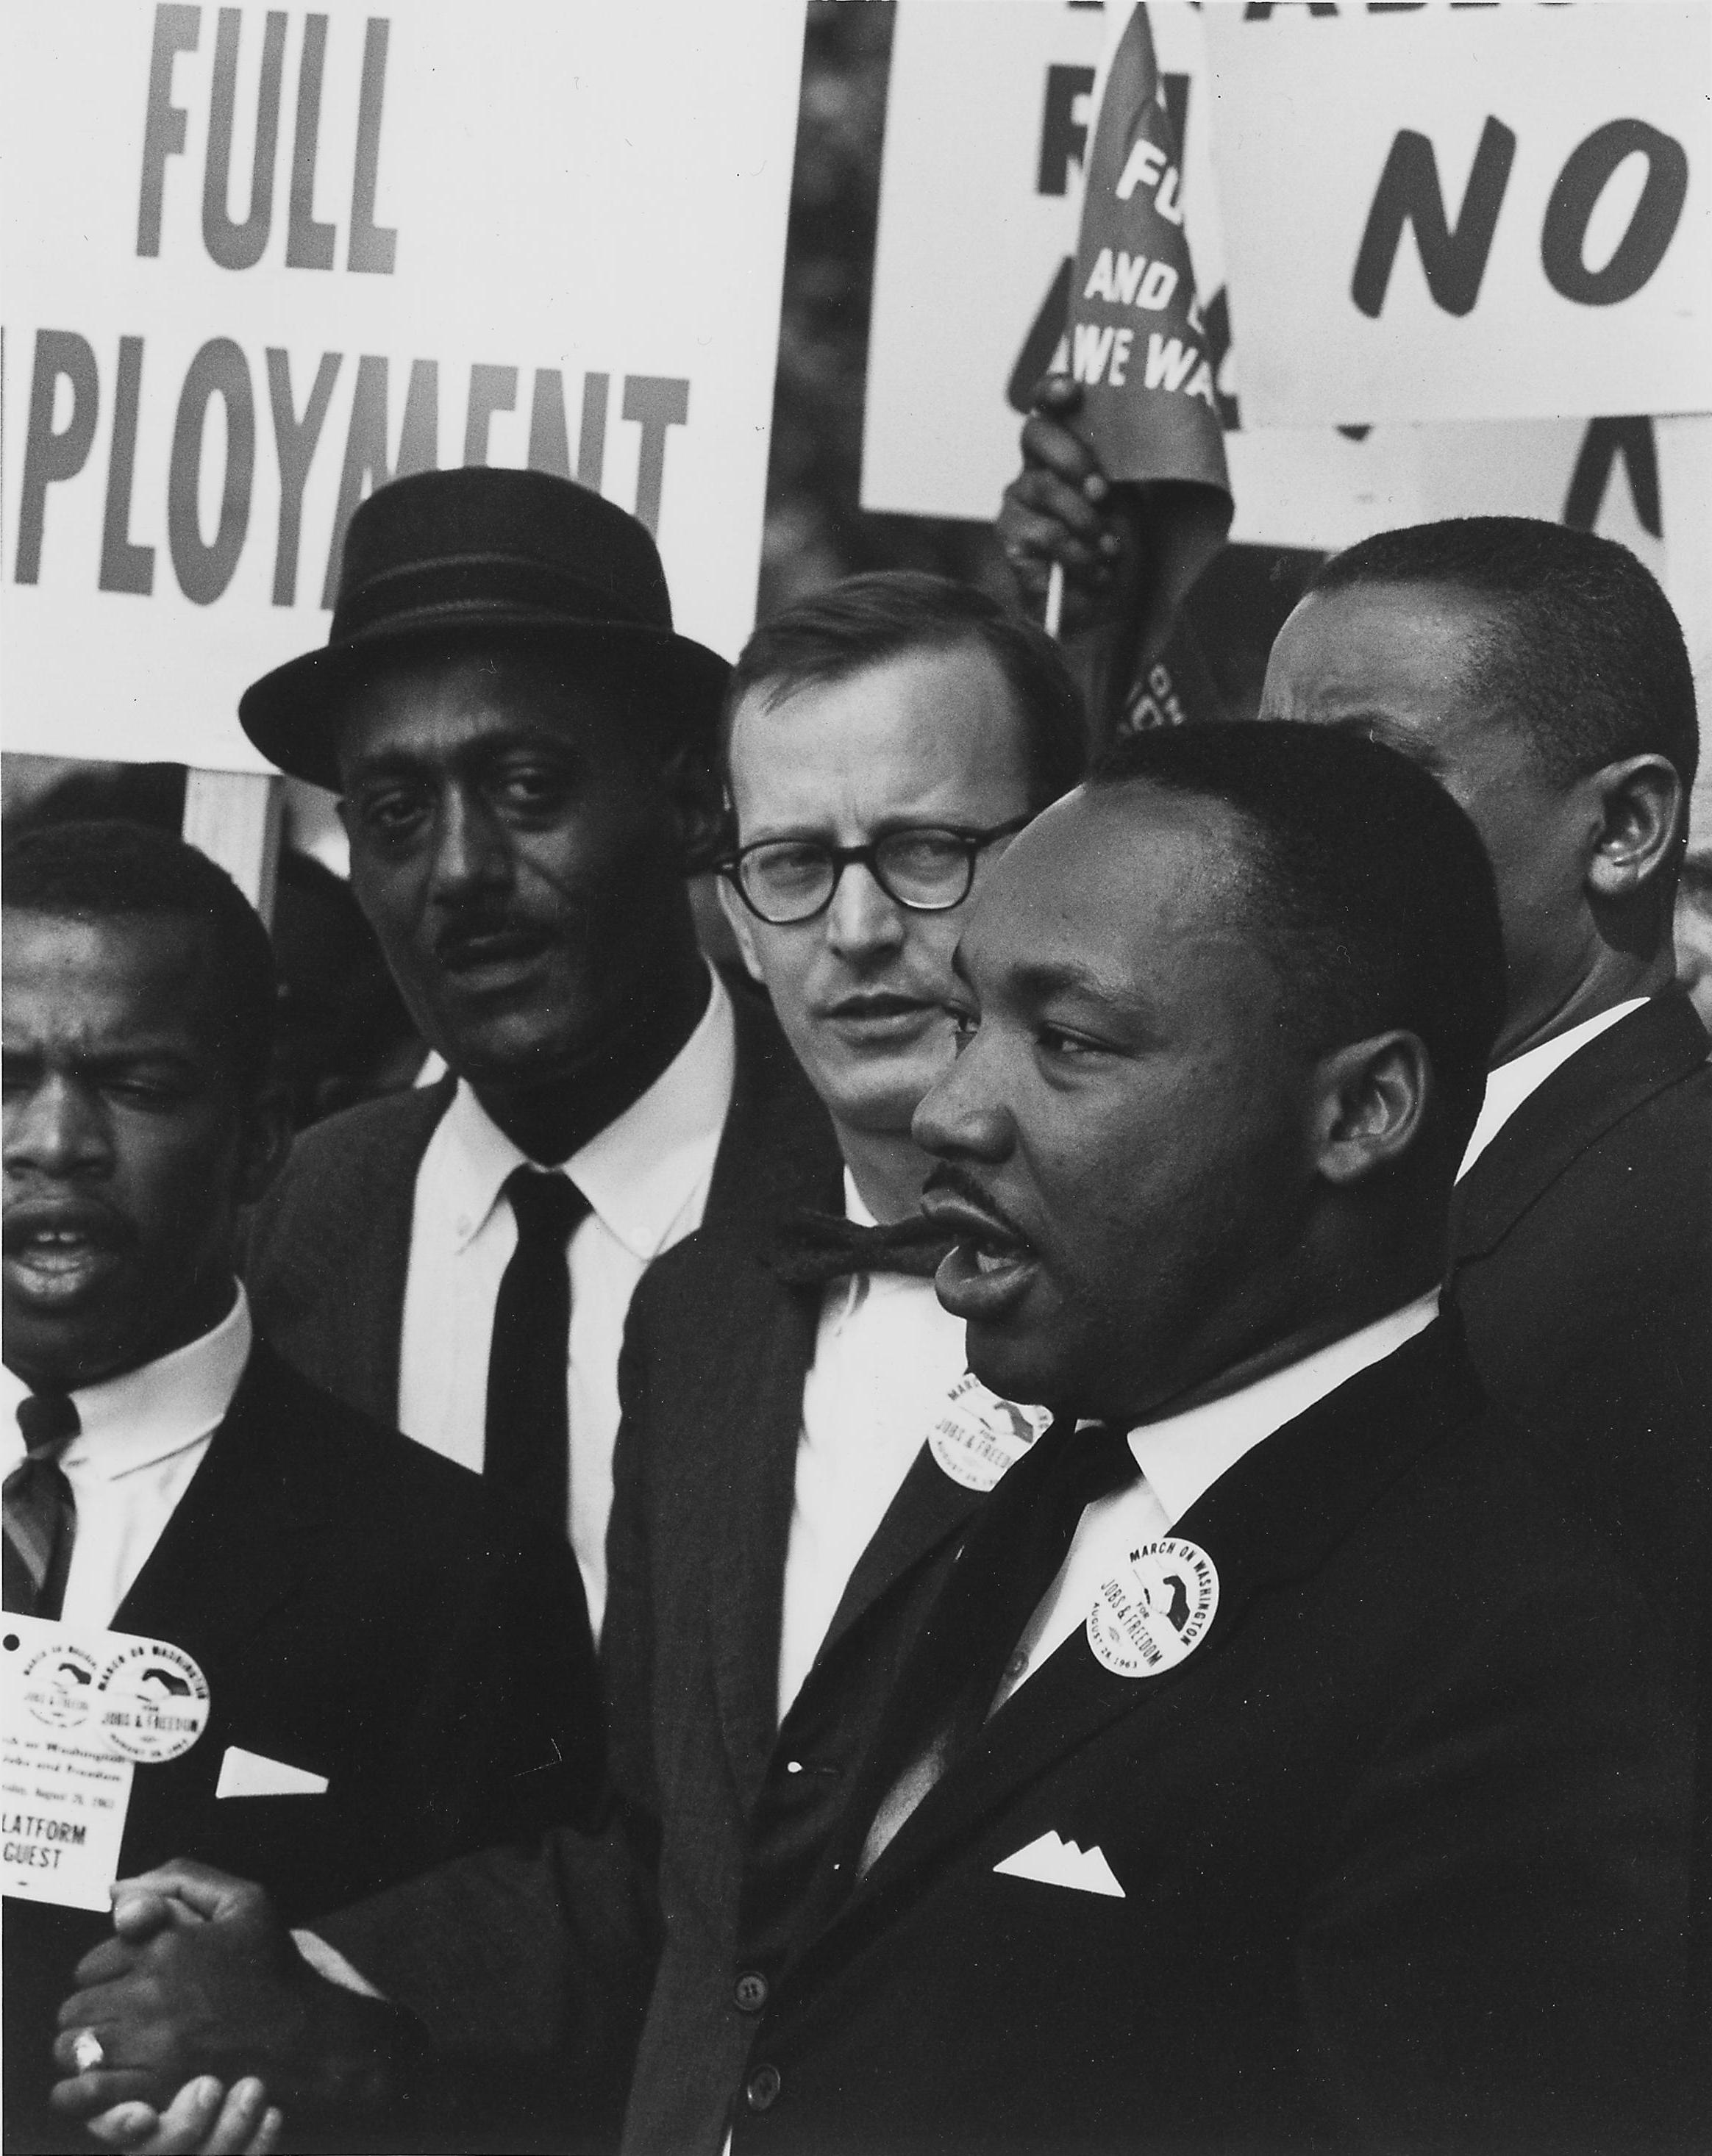 martin luther king texas liberal everyday is martin luther king day if we act goals self discipline and care for others